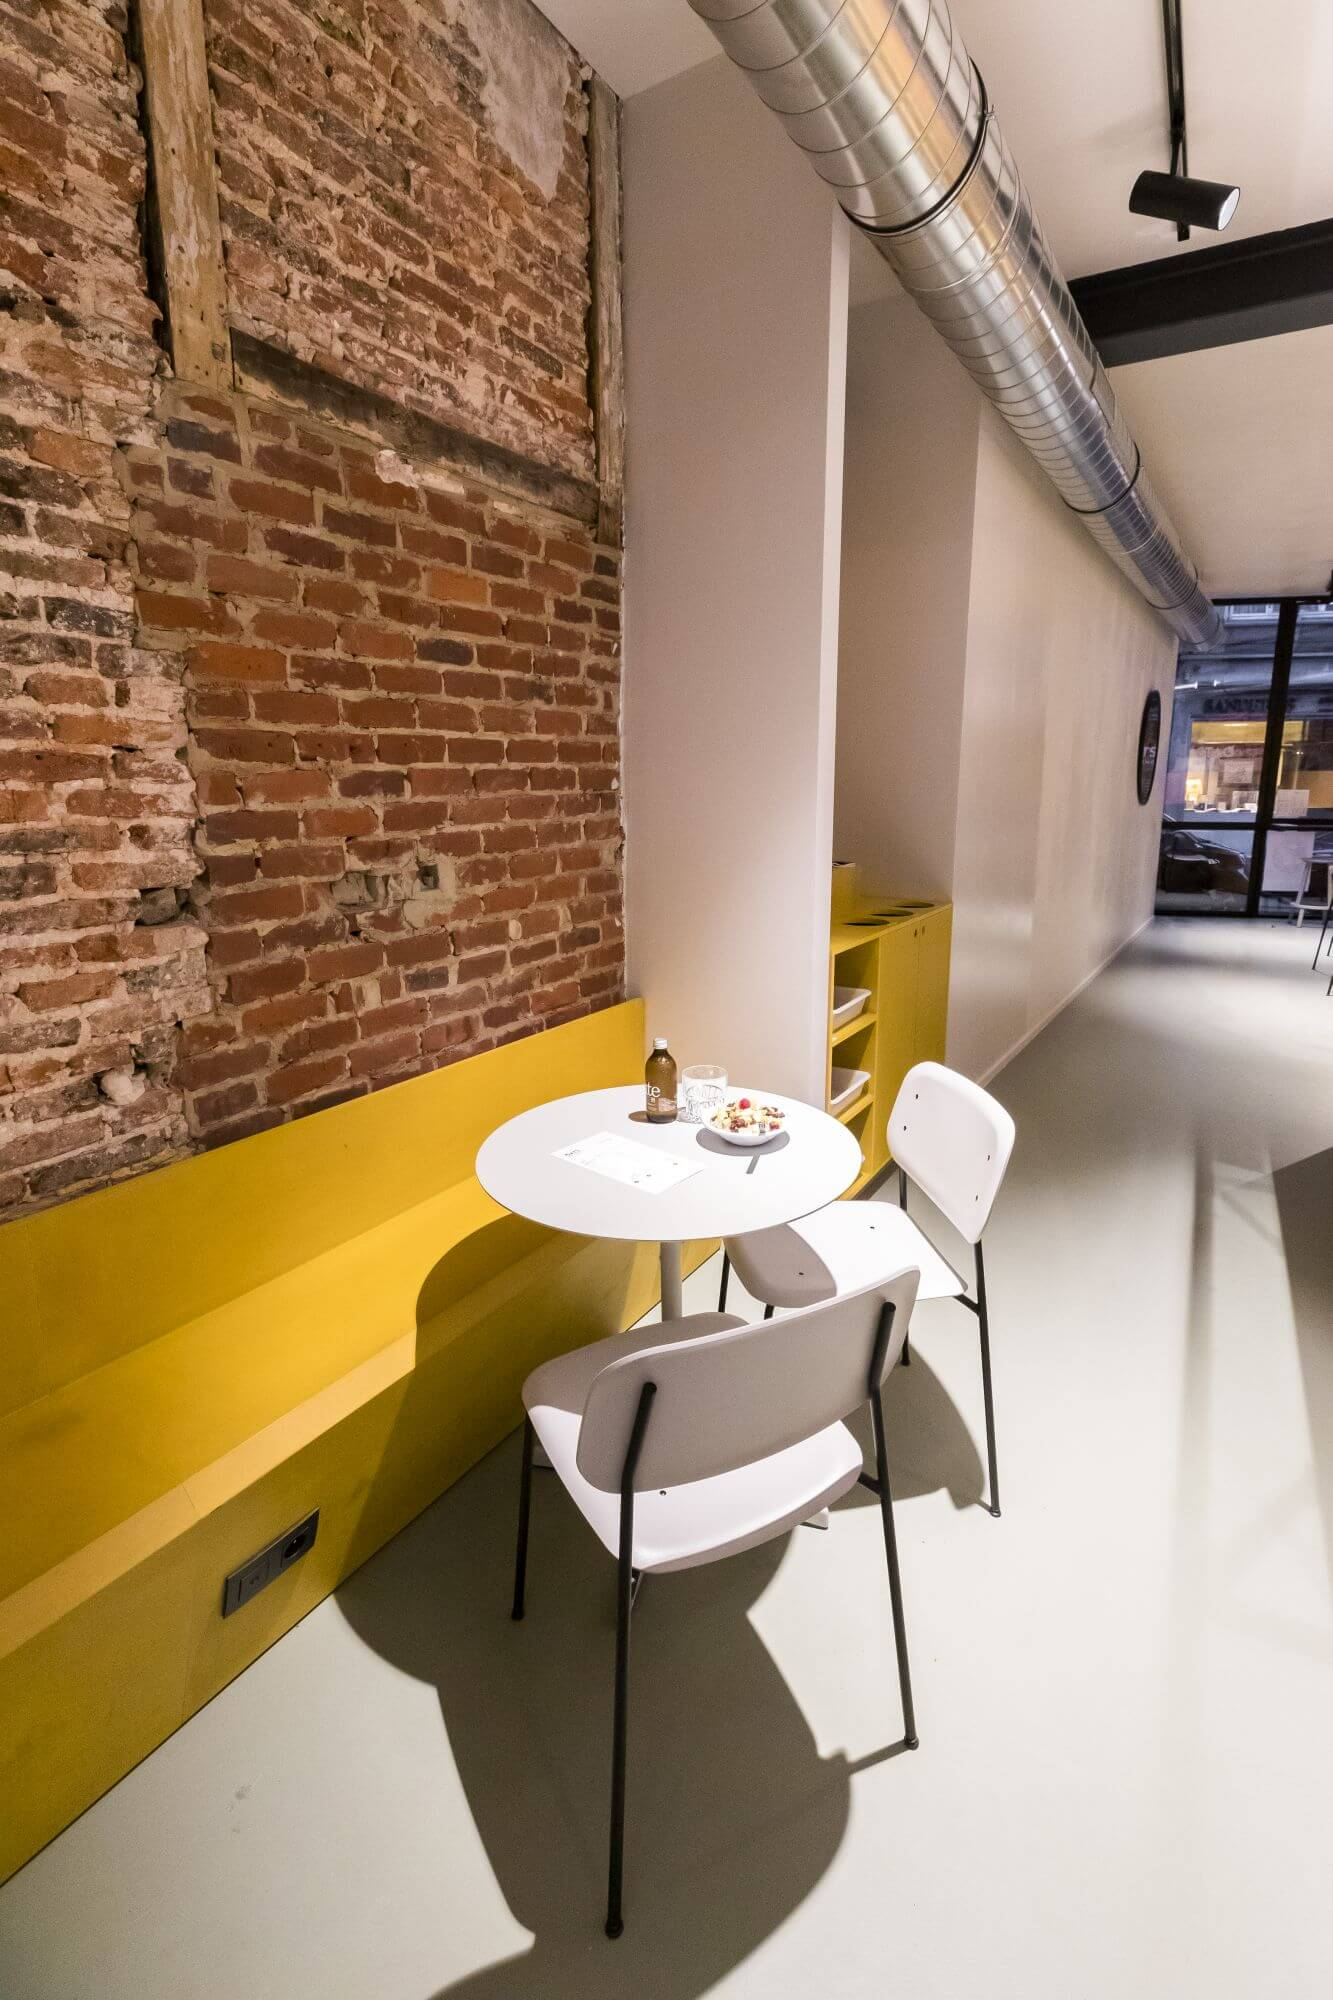 Rubio Monocoat used to finished wood in Belgian restaurant.